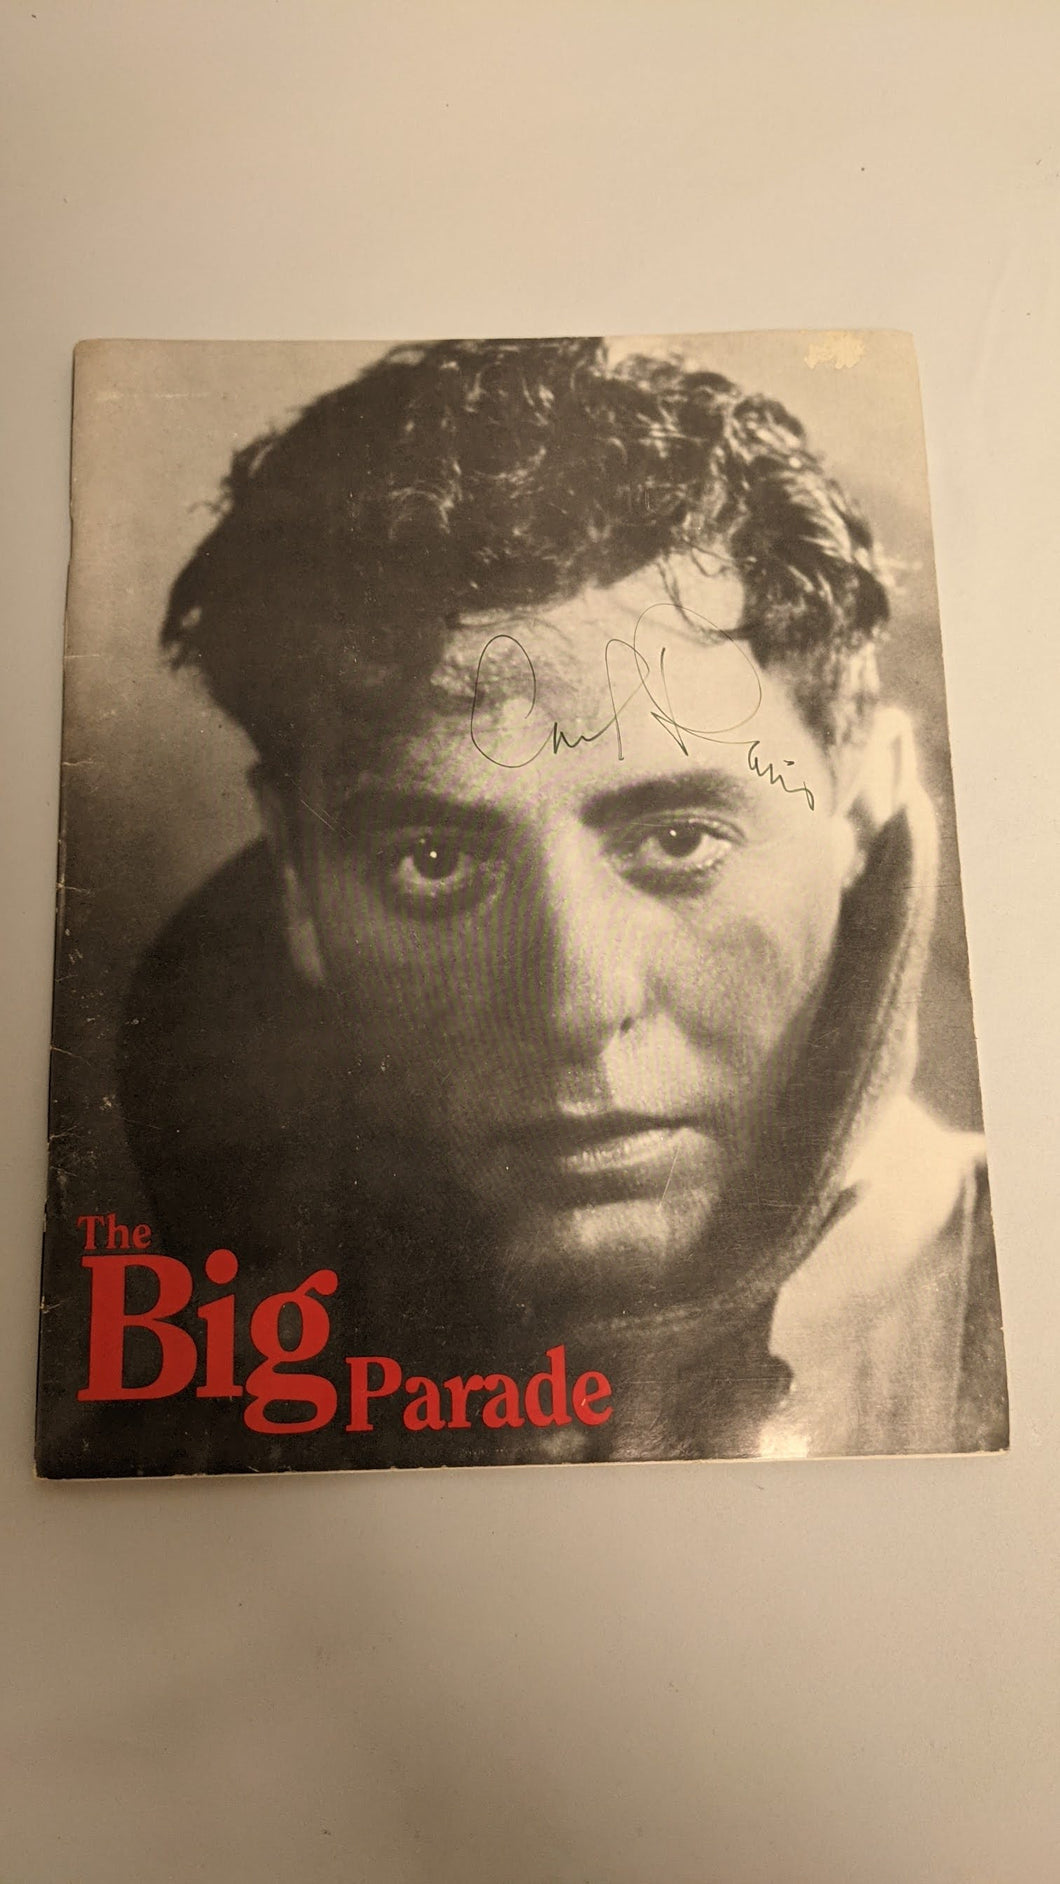 The Big Parade - Autographed by Composter Carls Davis